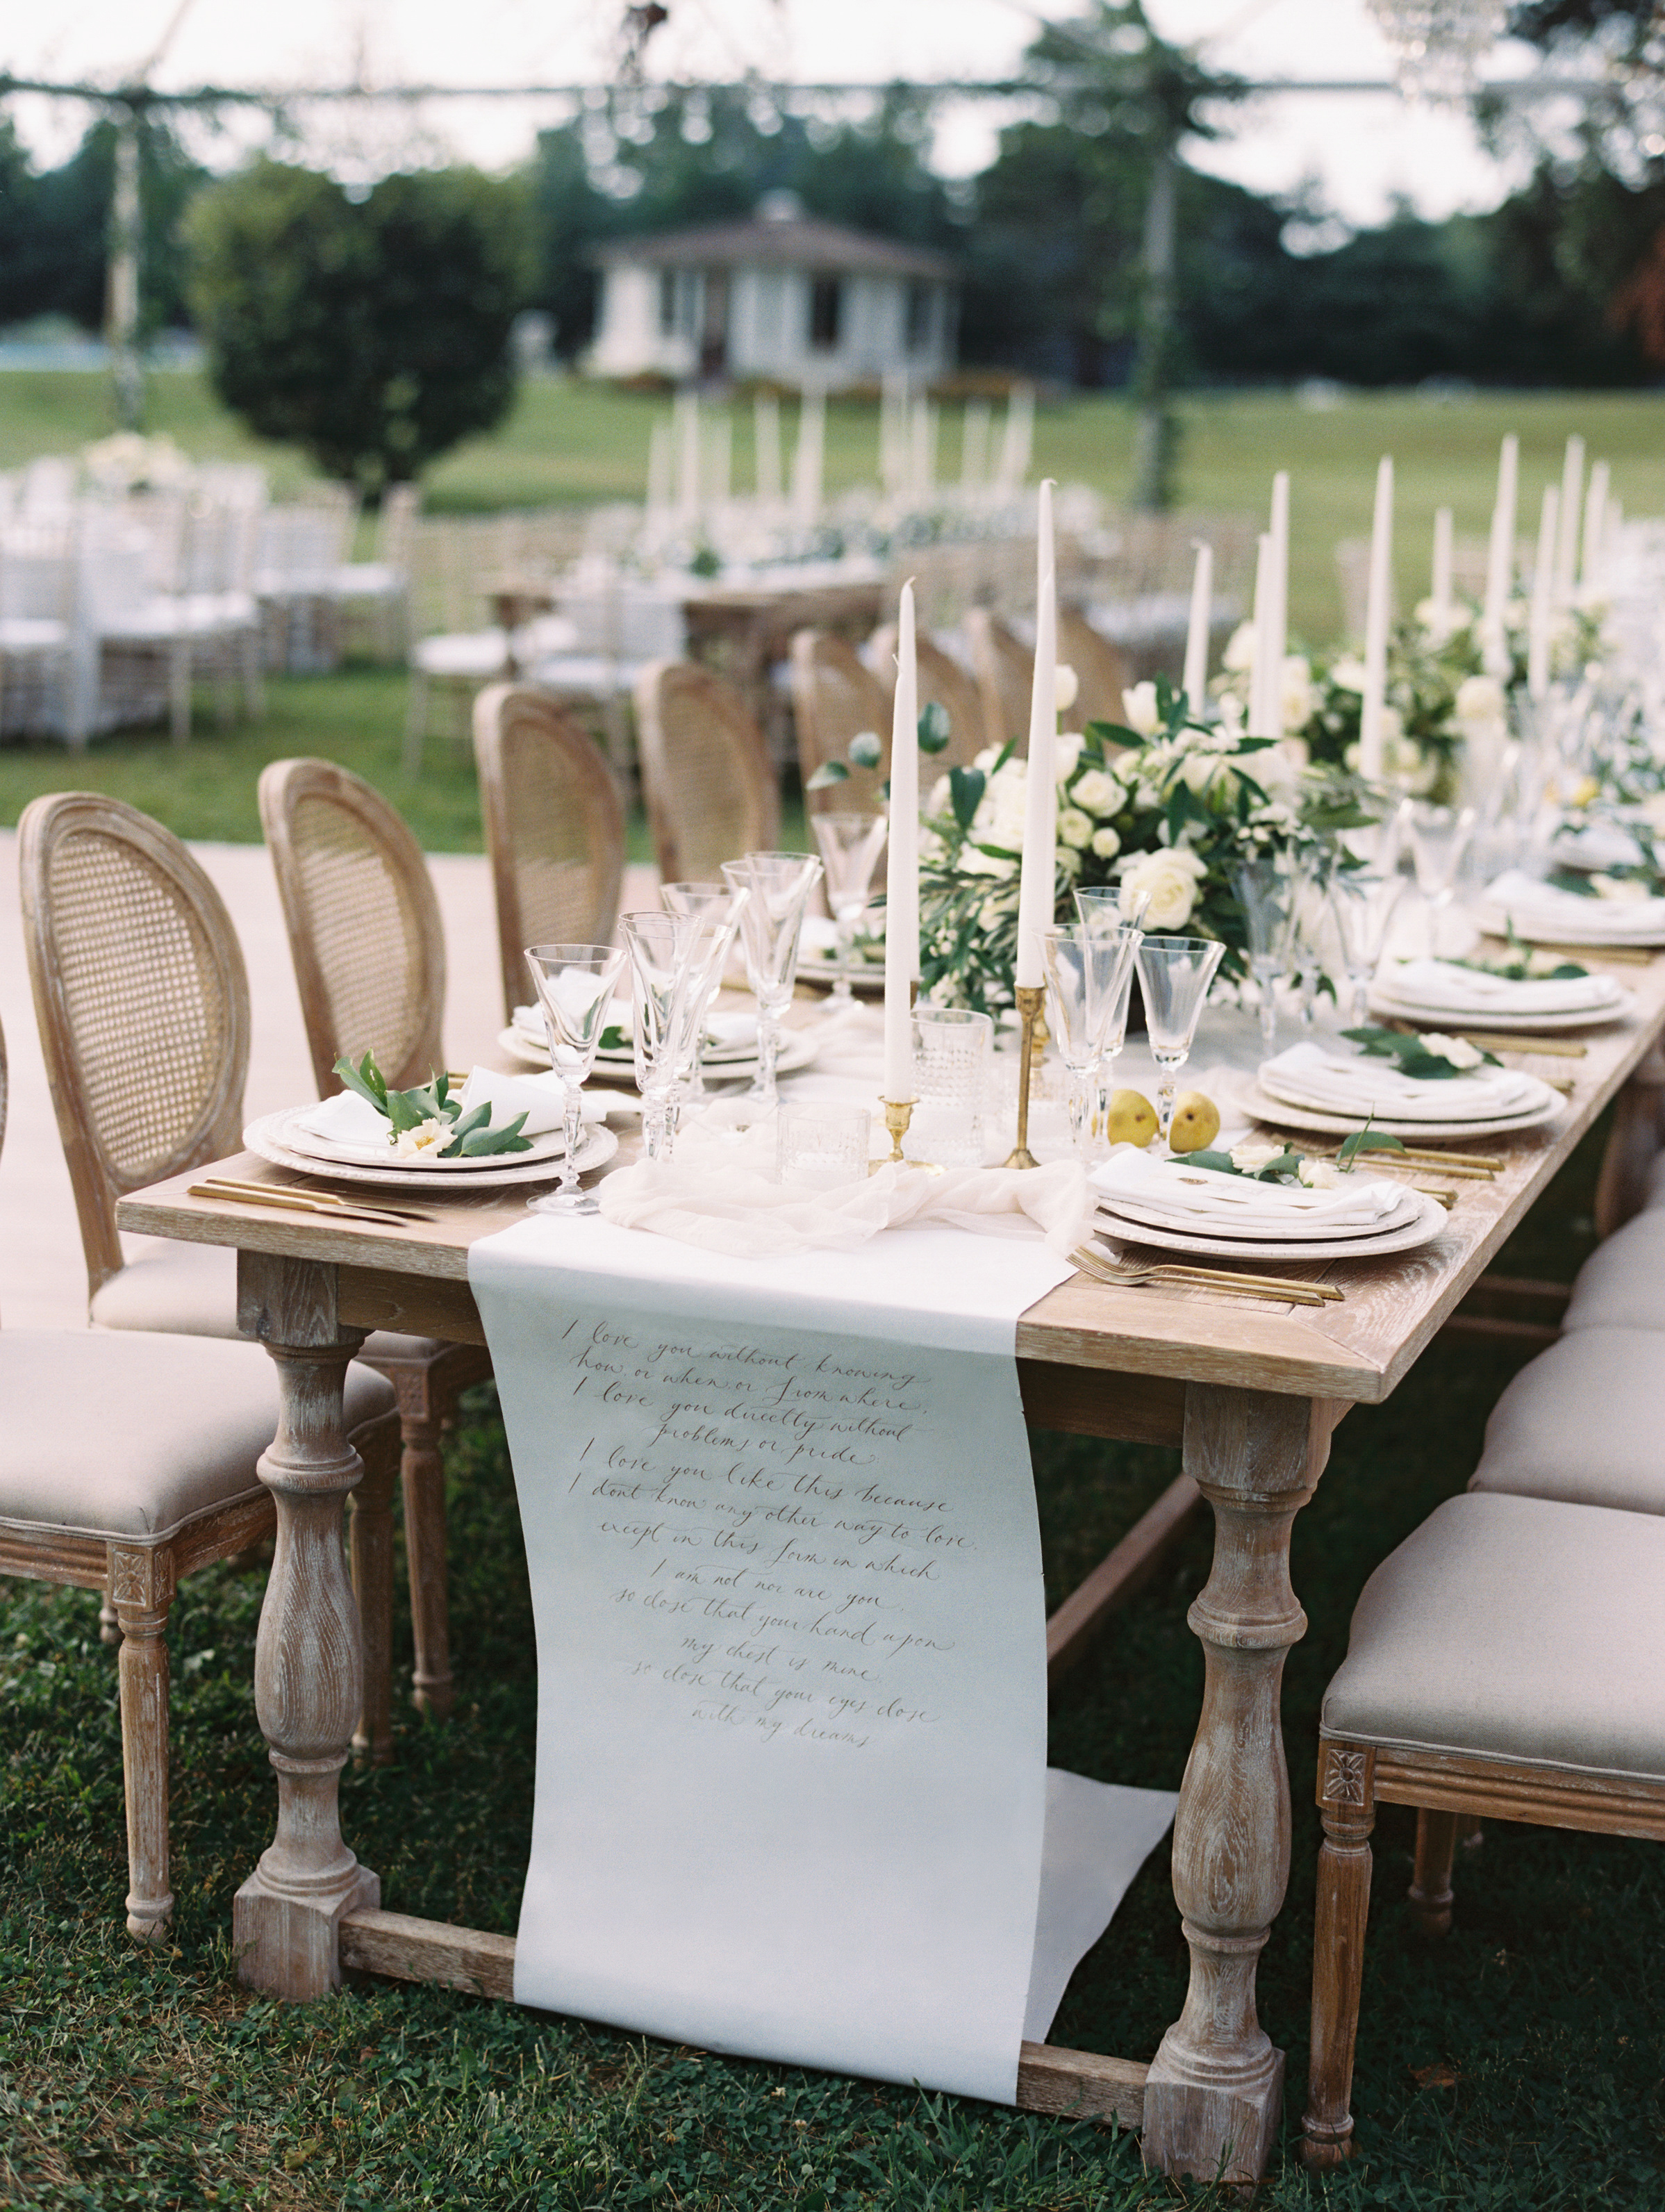 Photography: Lisa Ziesing with Abby Jiu Photography | Planning & Styling: Lauryn Prattes Styling and Events | Handmade Paper & Calligraphy: Spurlé Gul Studio | Florals: Sweet Root Village